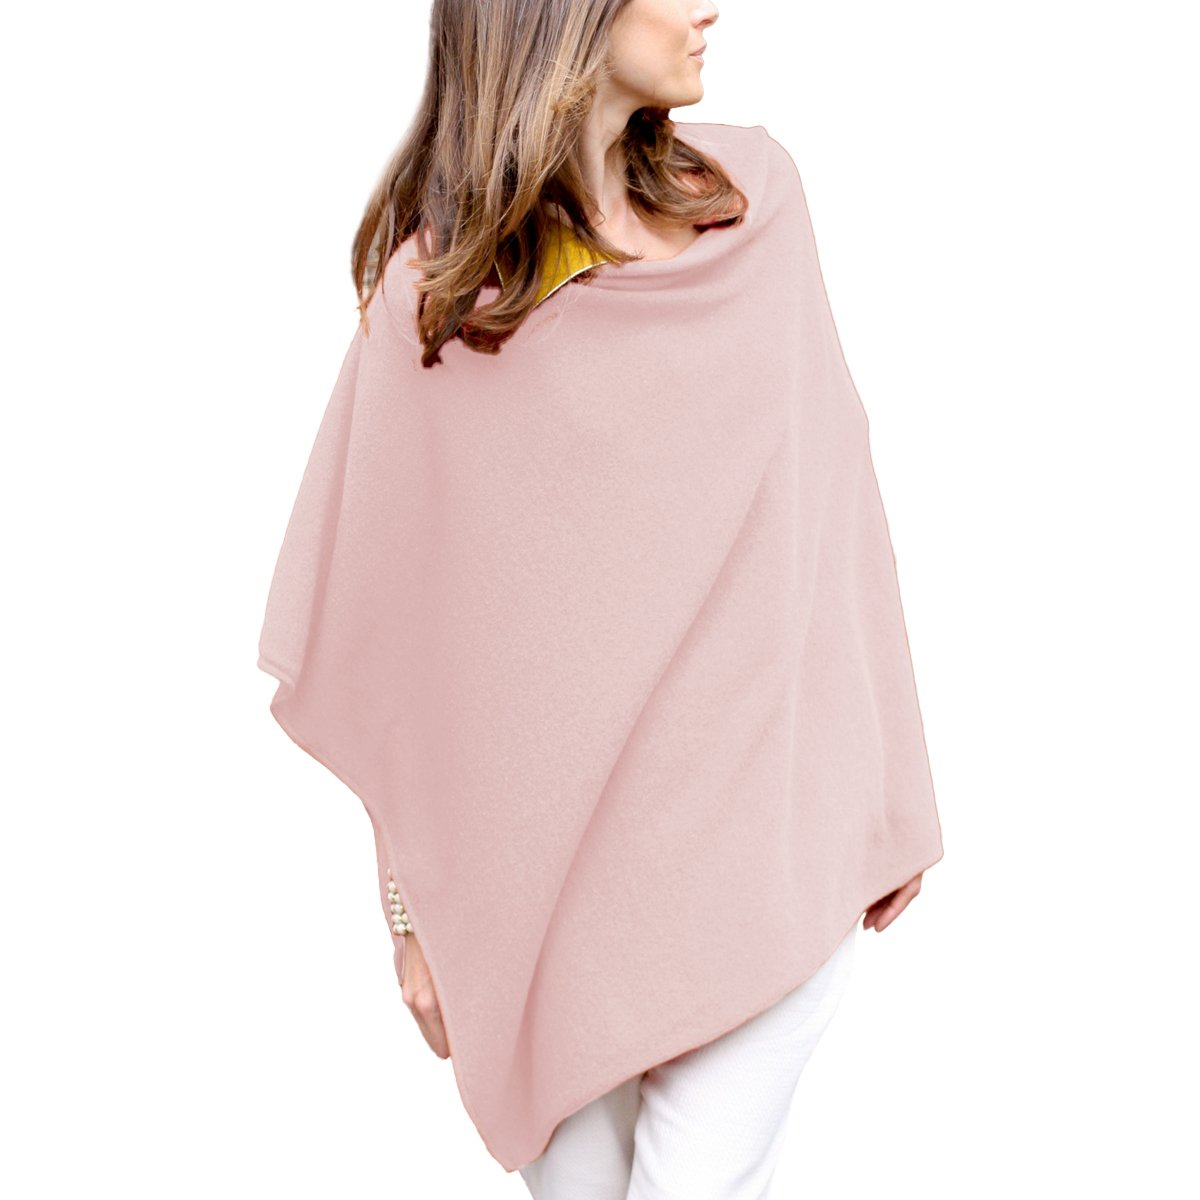 Parisbonbon Women's 100% Cashmere Crew Neck Draped Poncho Color Doll Pink Size L by Parisbonbon